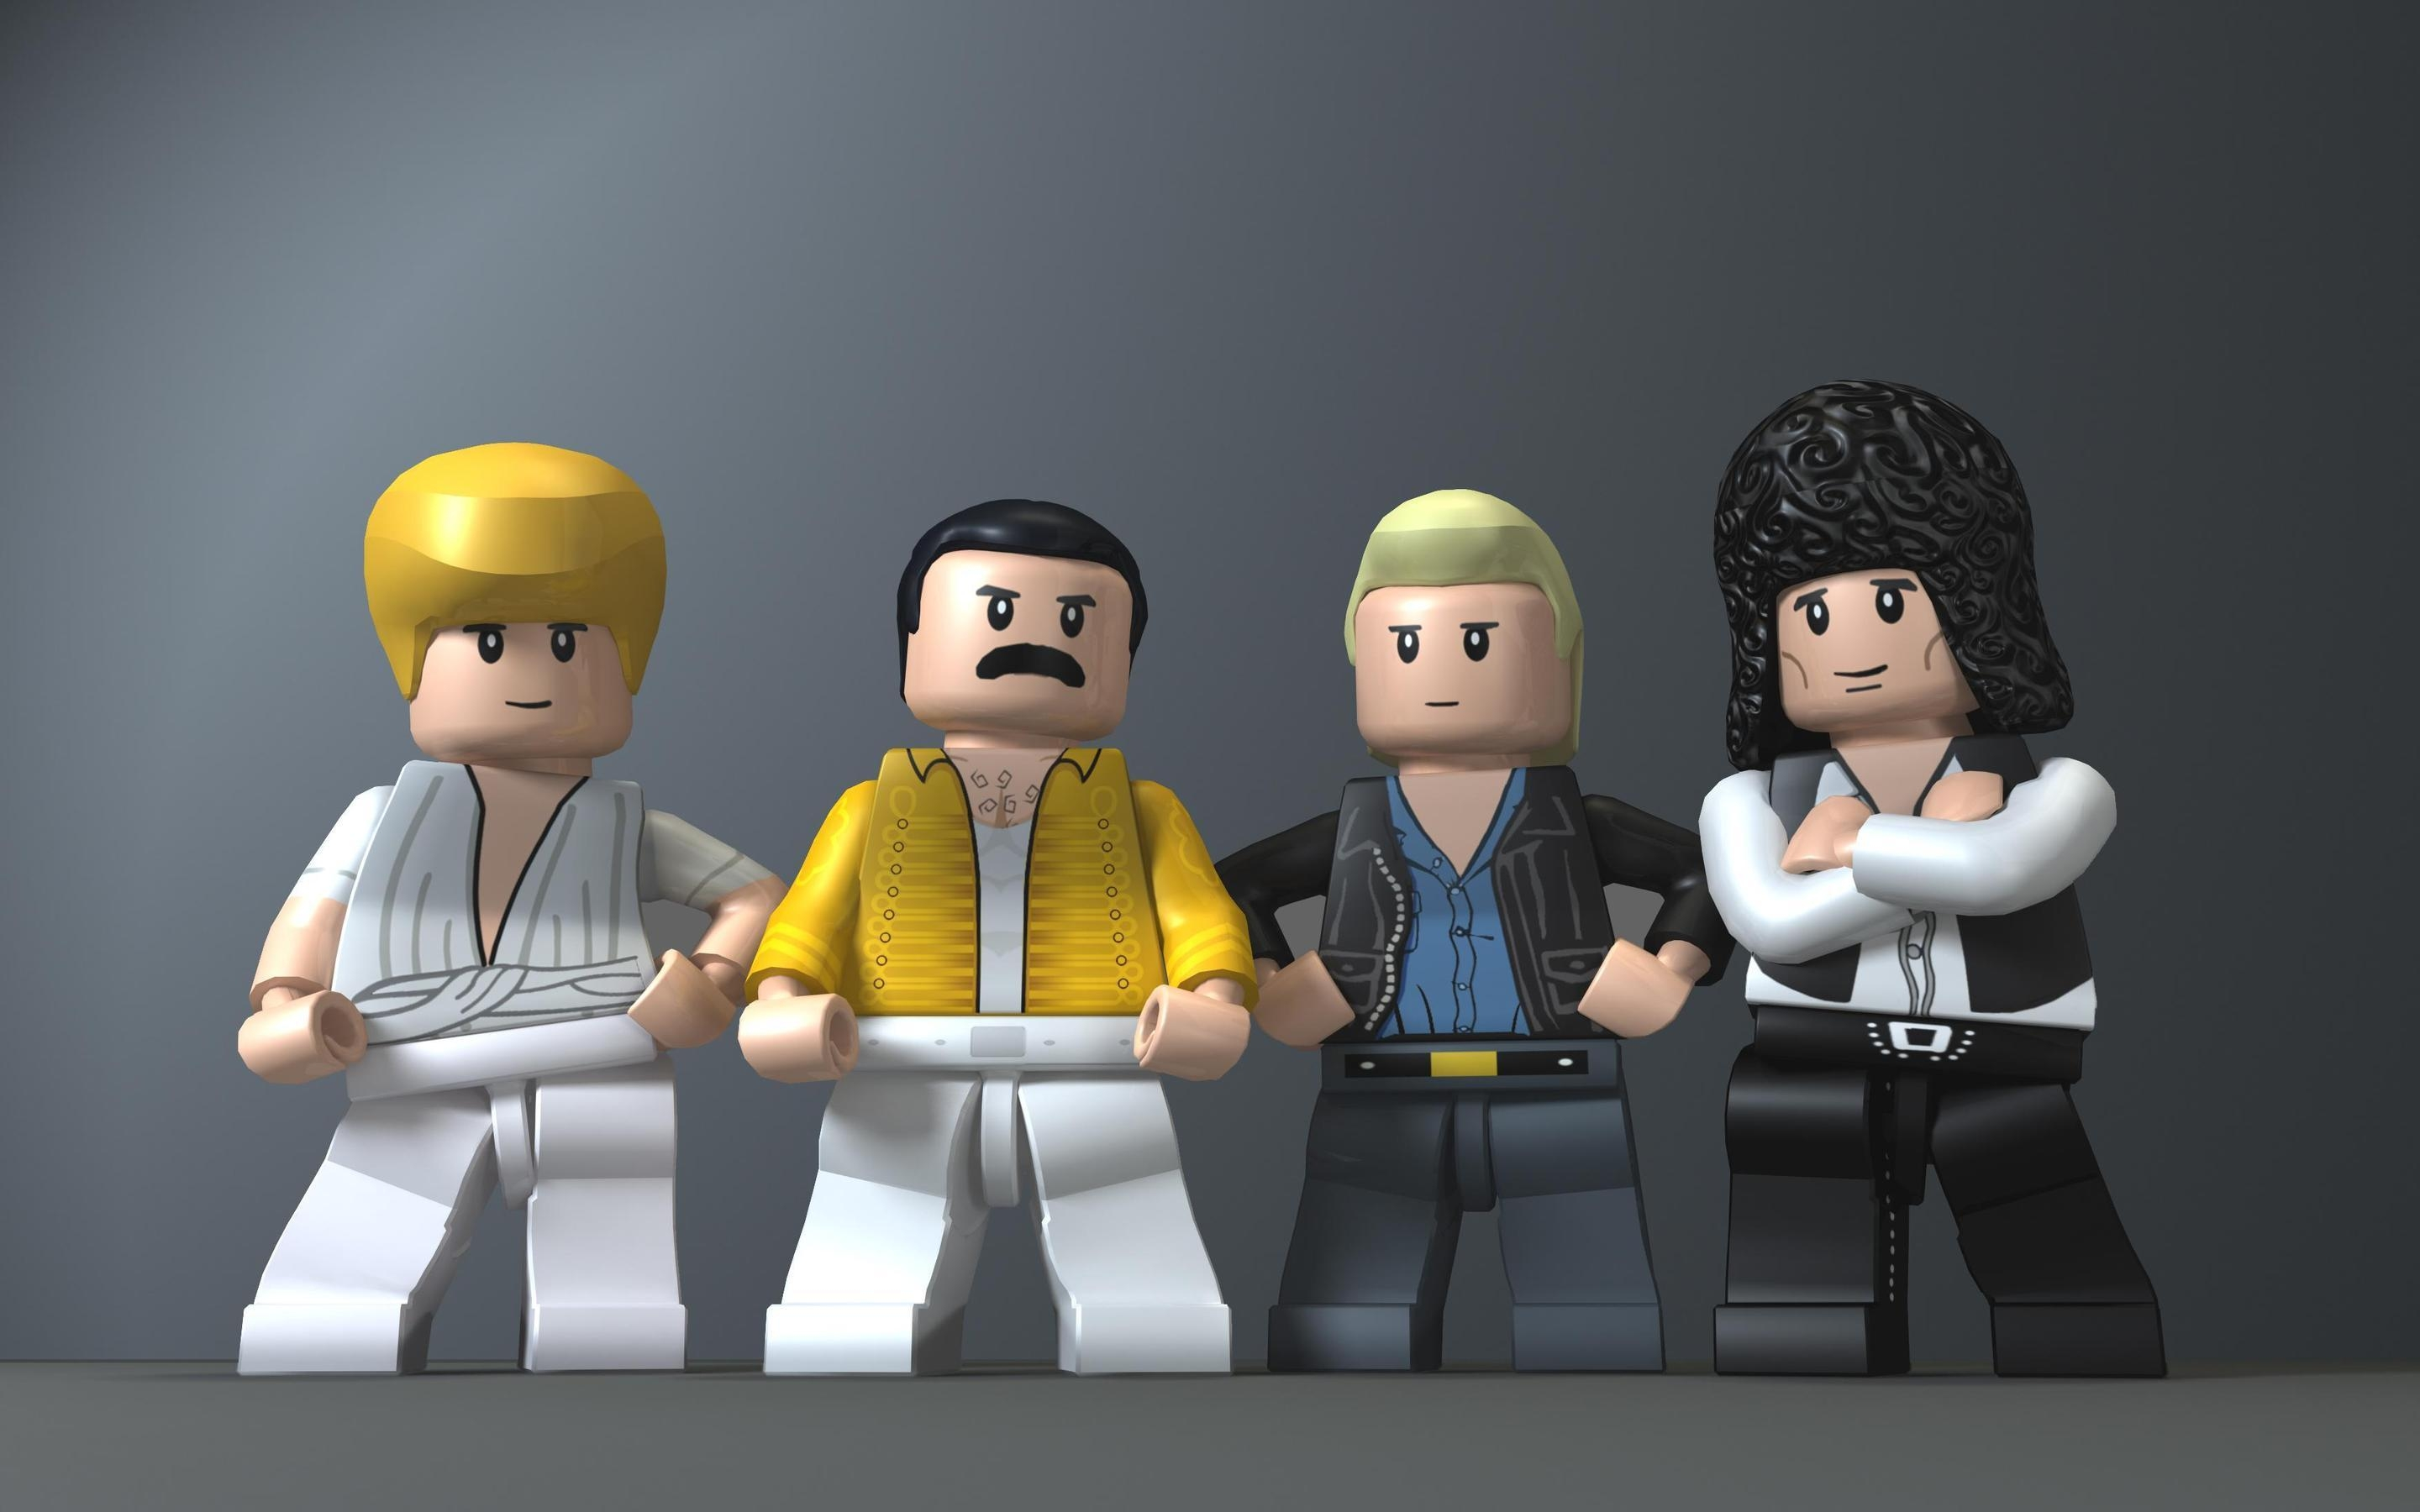 Queen Figures for 2880 x 1800 Retina Display resolution